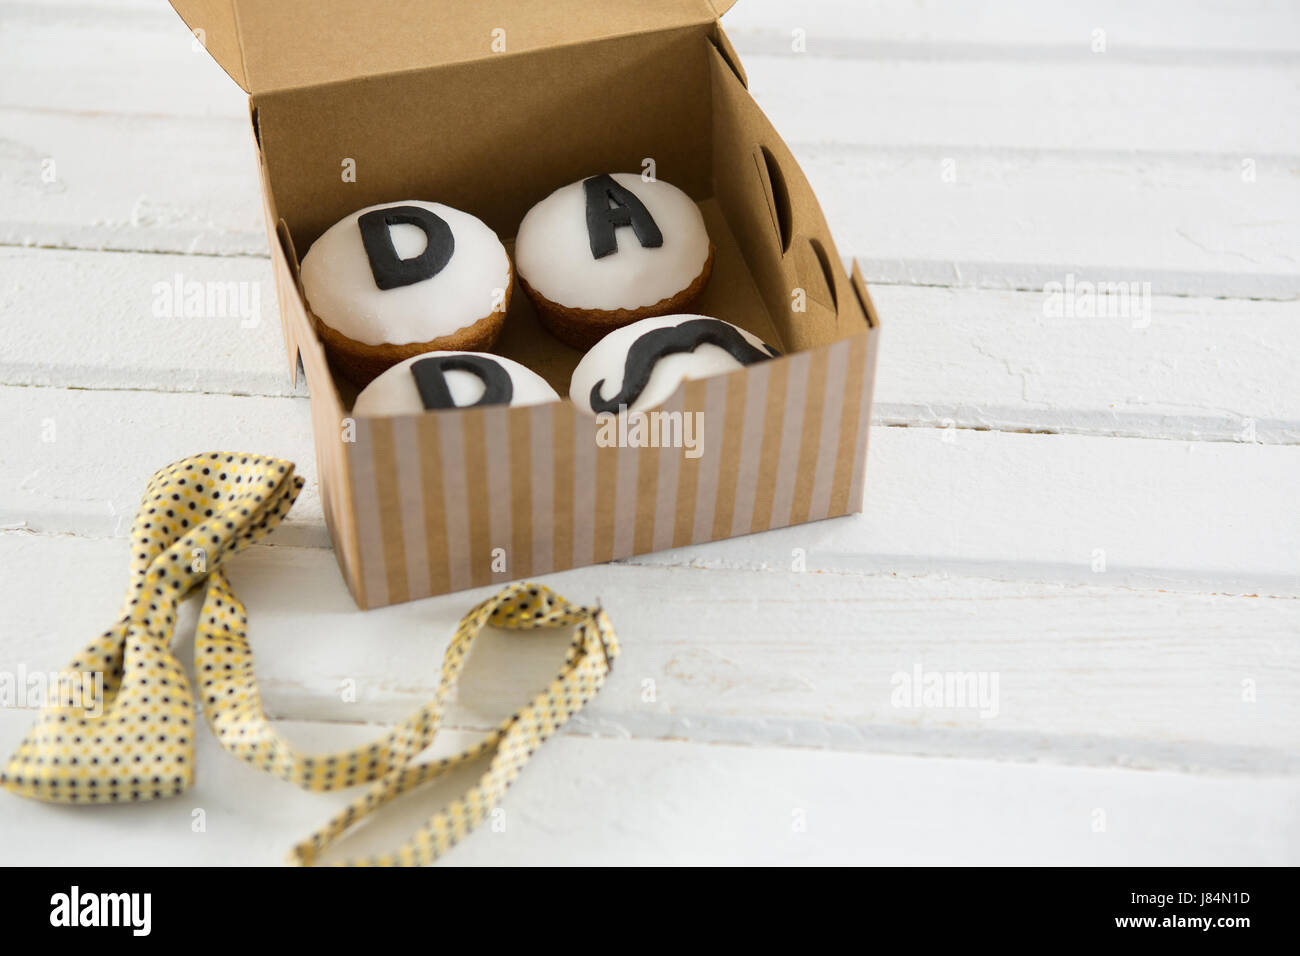 High angle view of cupcakes in container by bow tie on wooden table - Stock Image